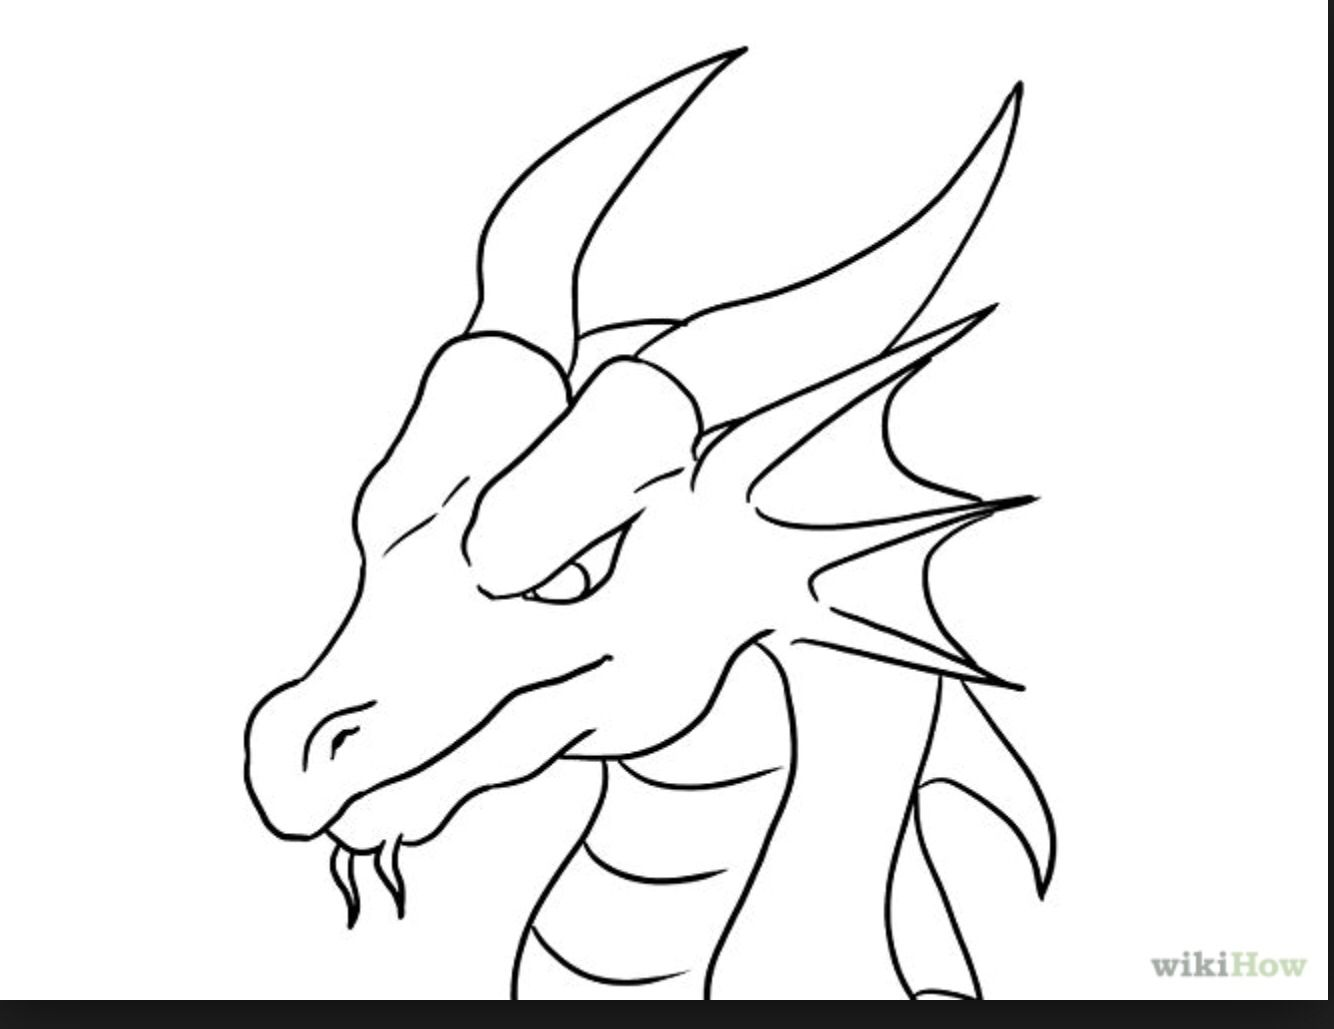 25 Best Ideas About Easy Dragon Drawings On Pinterest